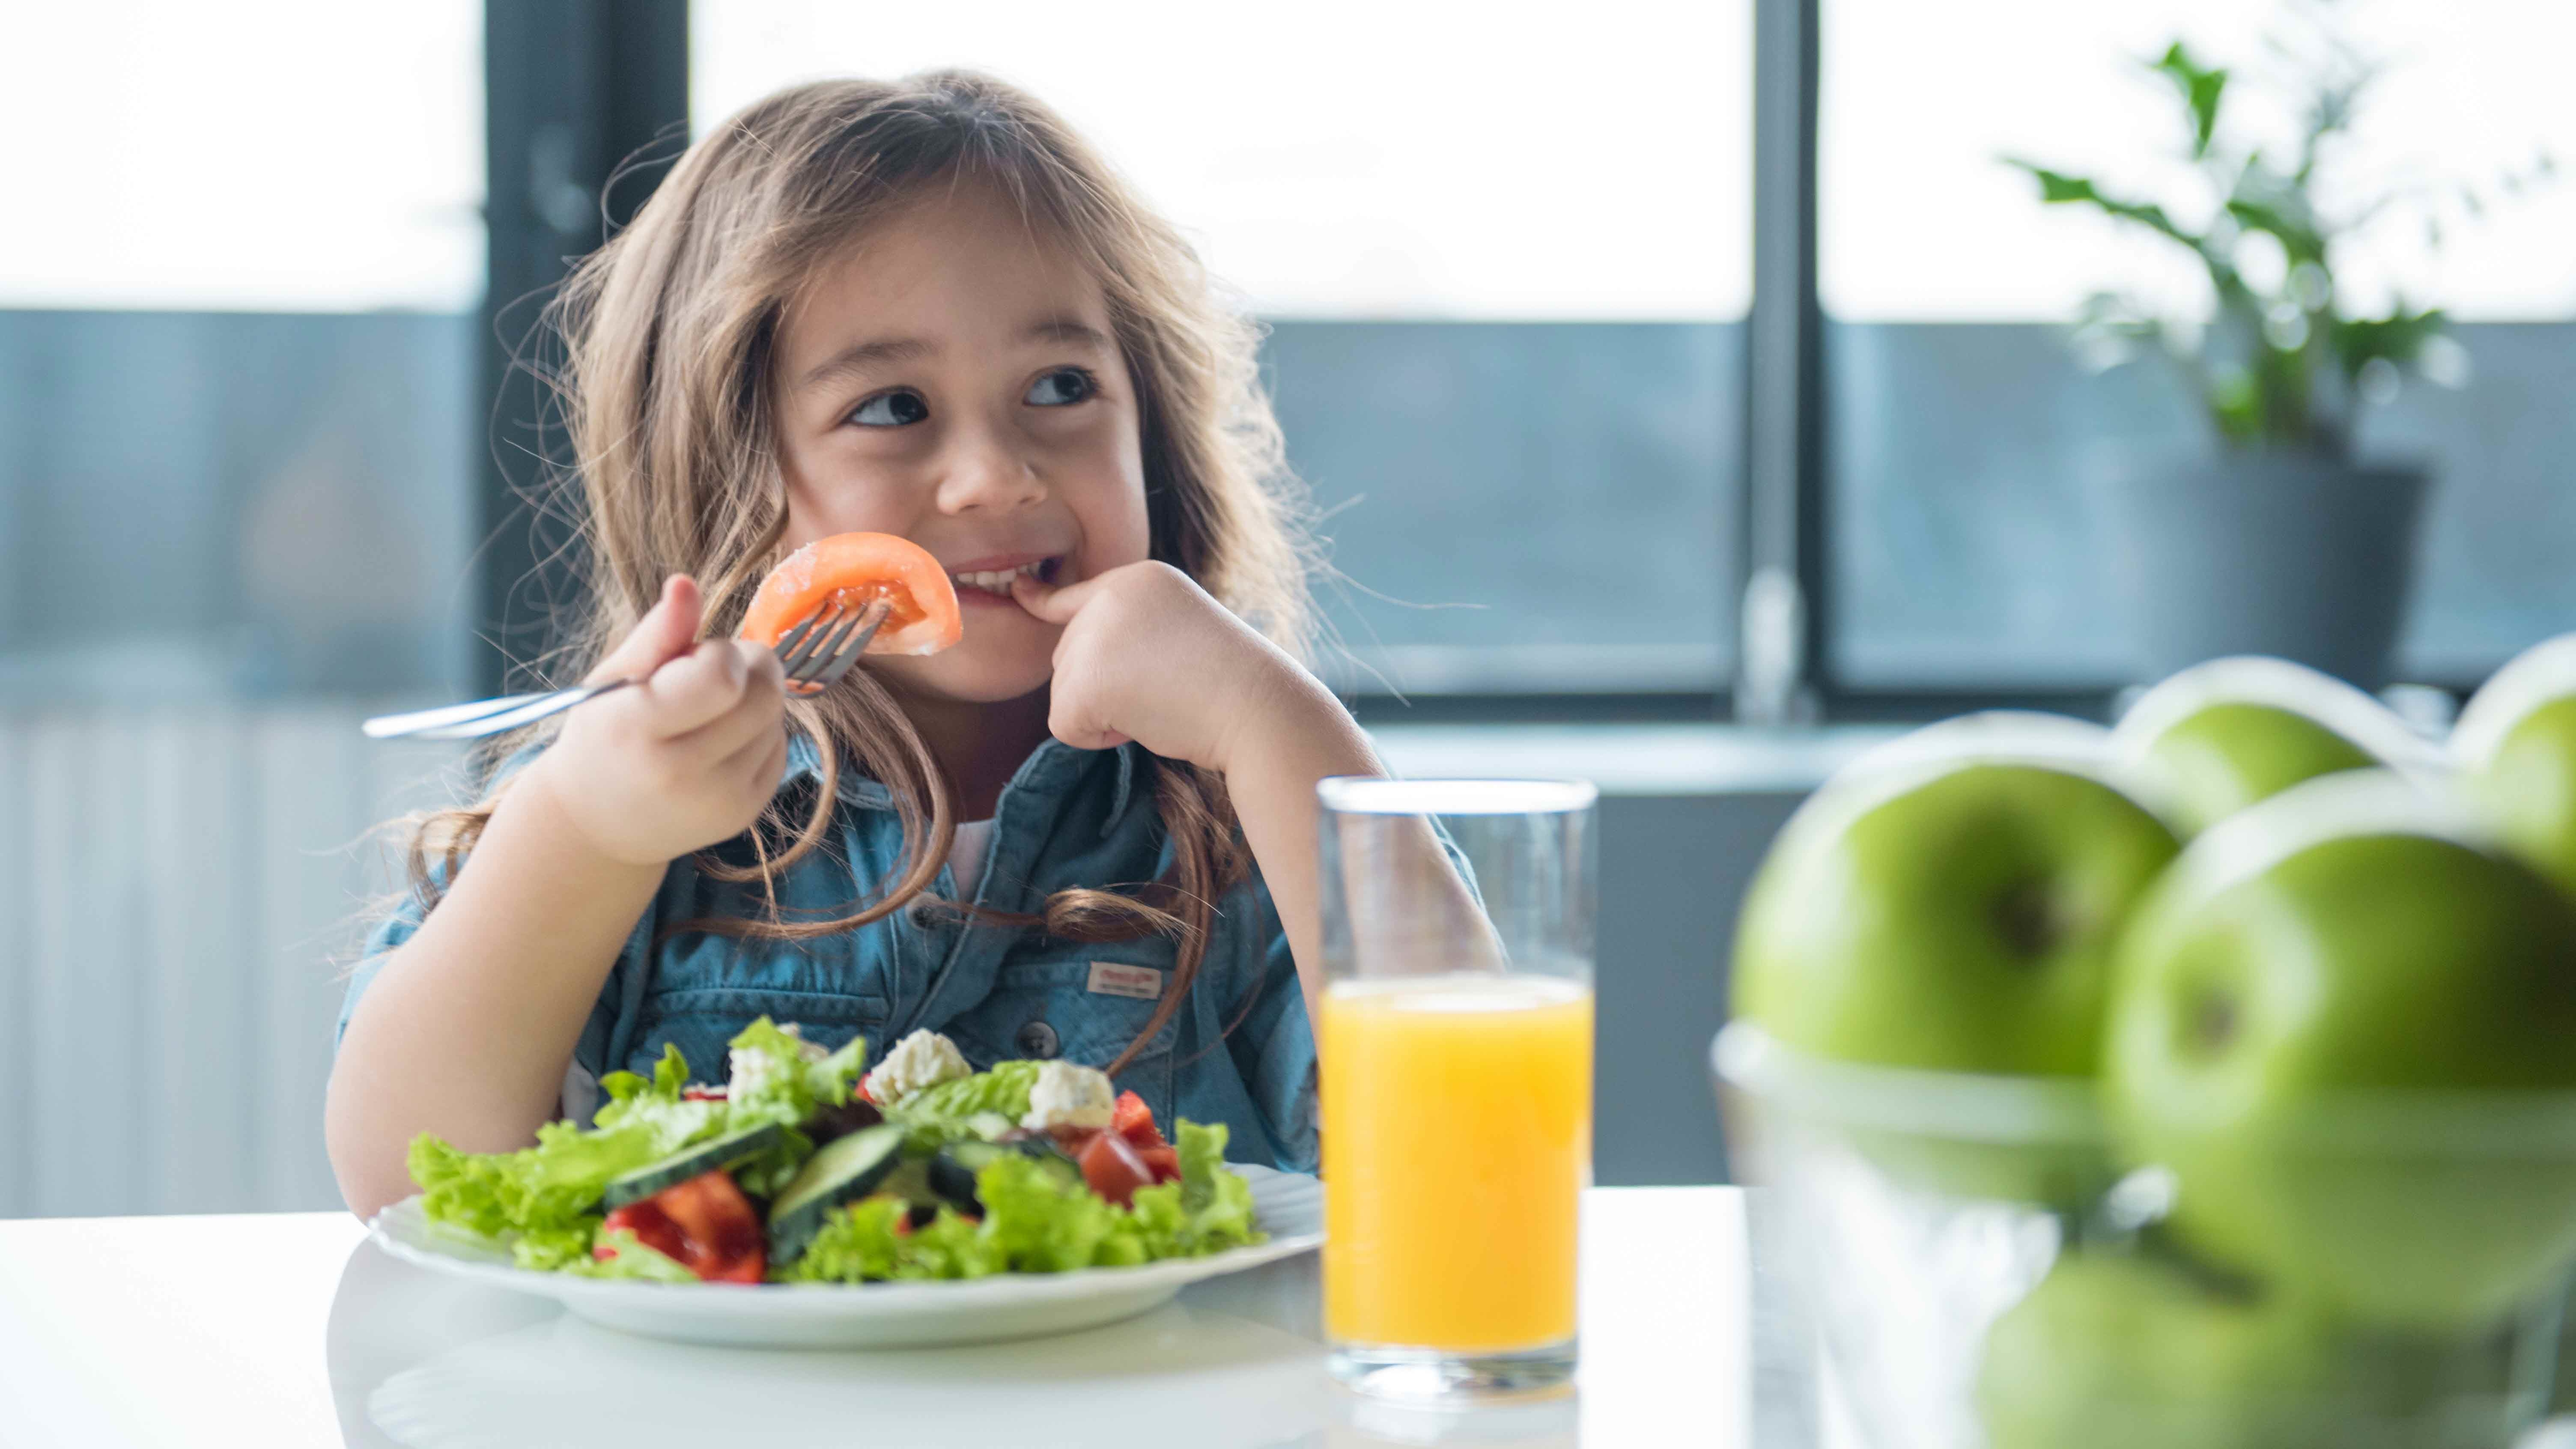 Parents: Here's How To Deal With Fussy Eaters